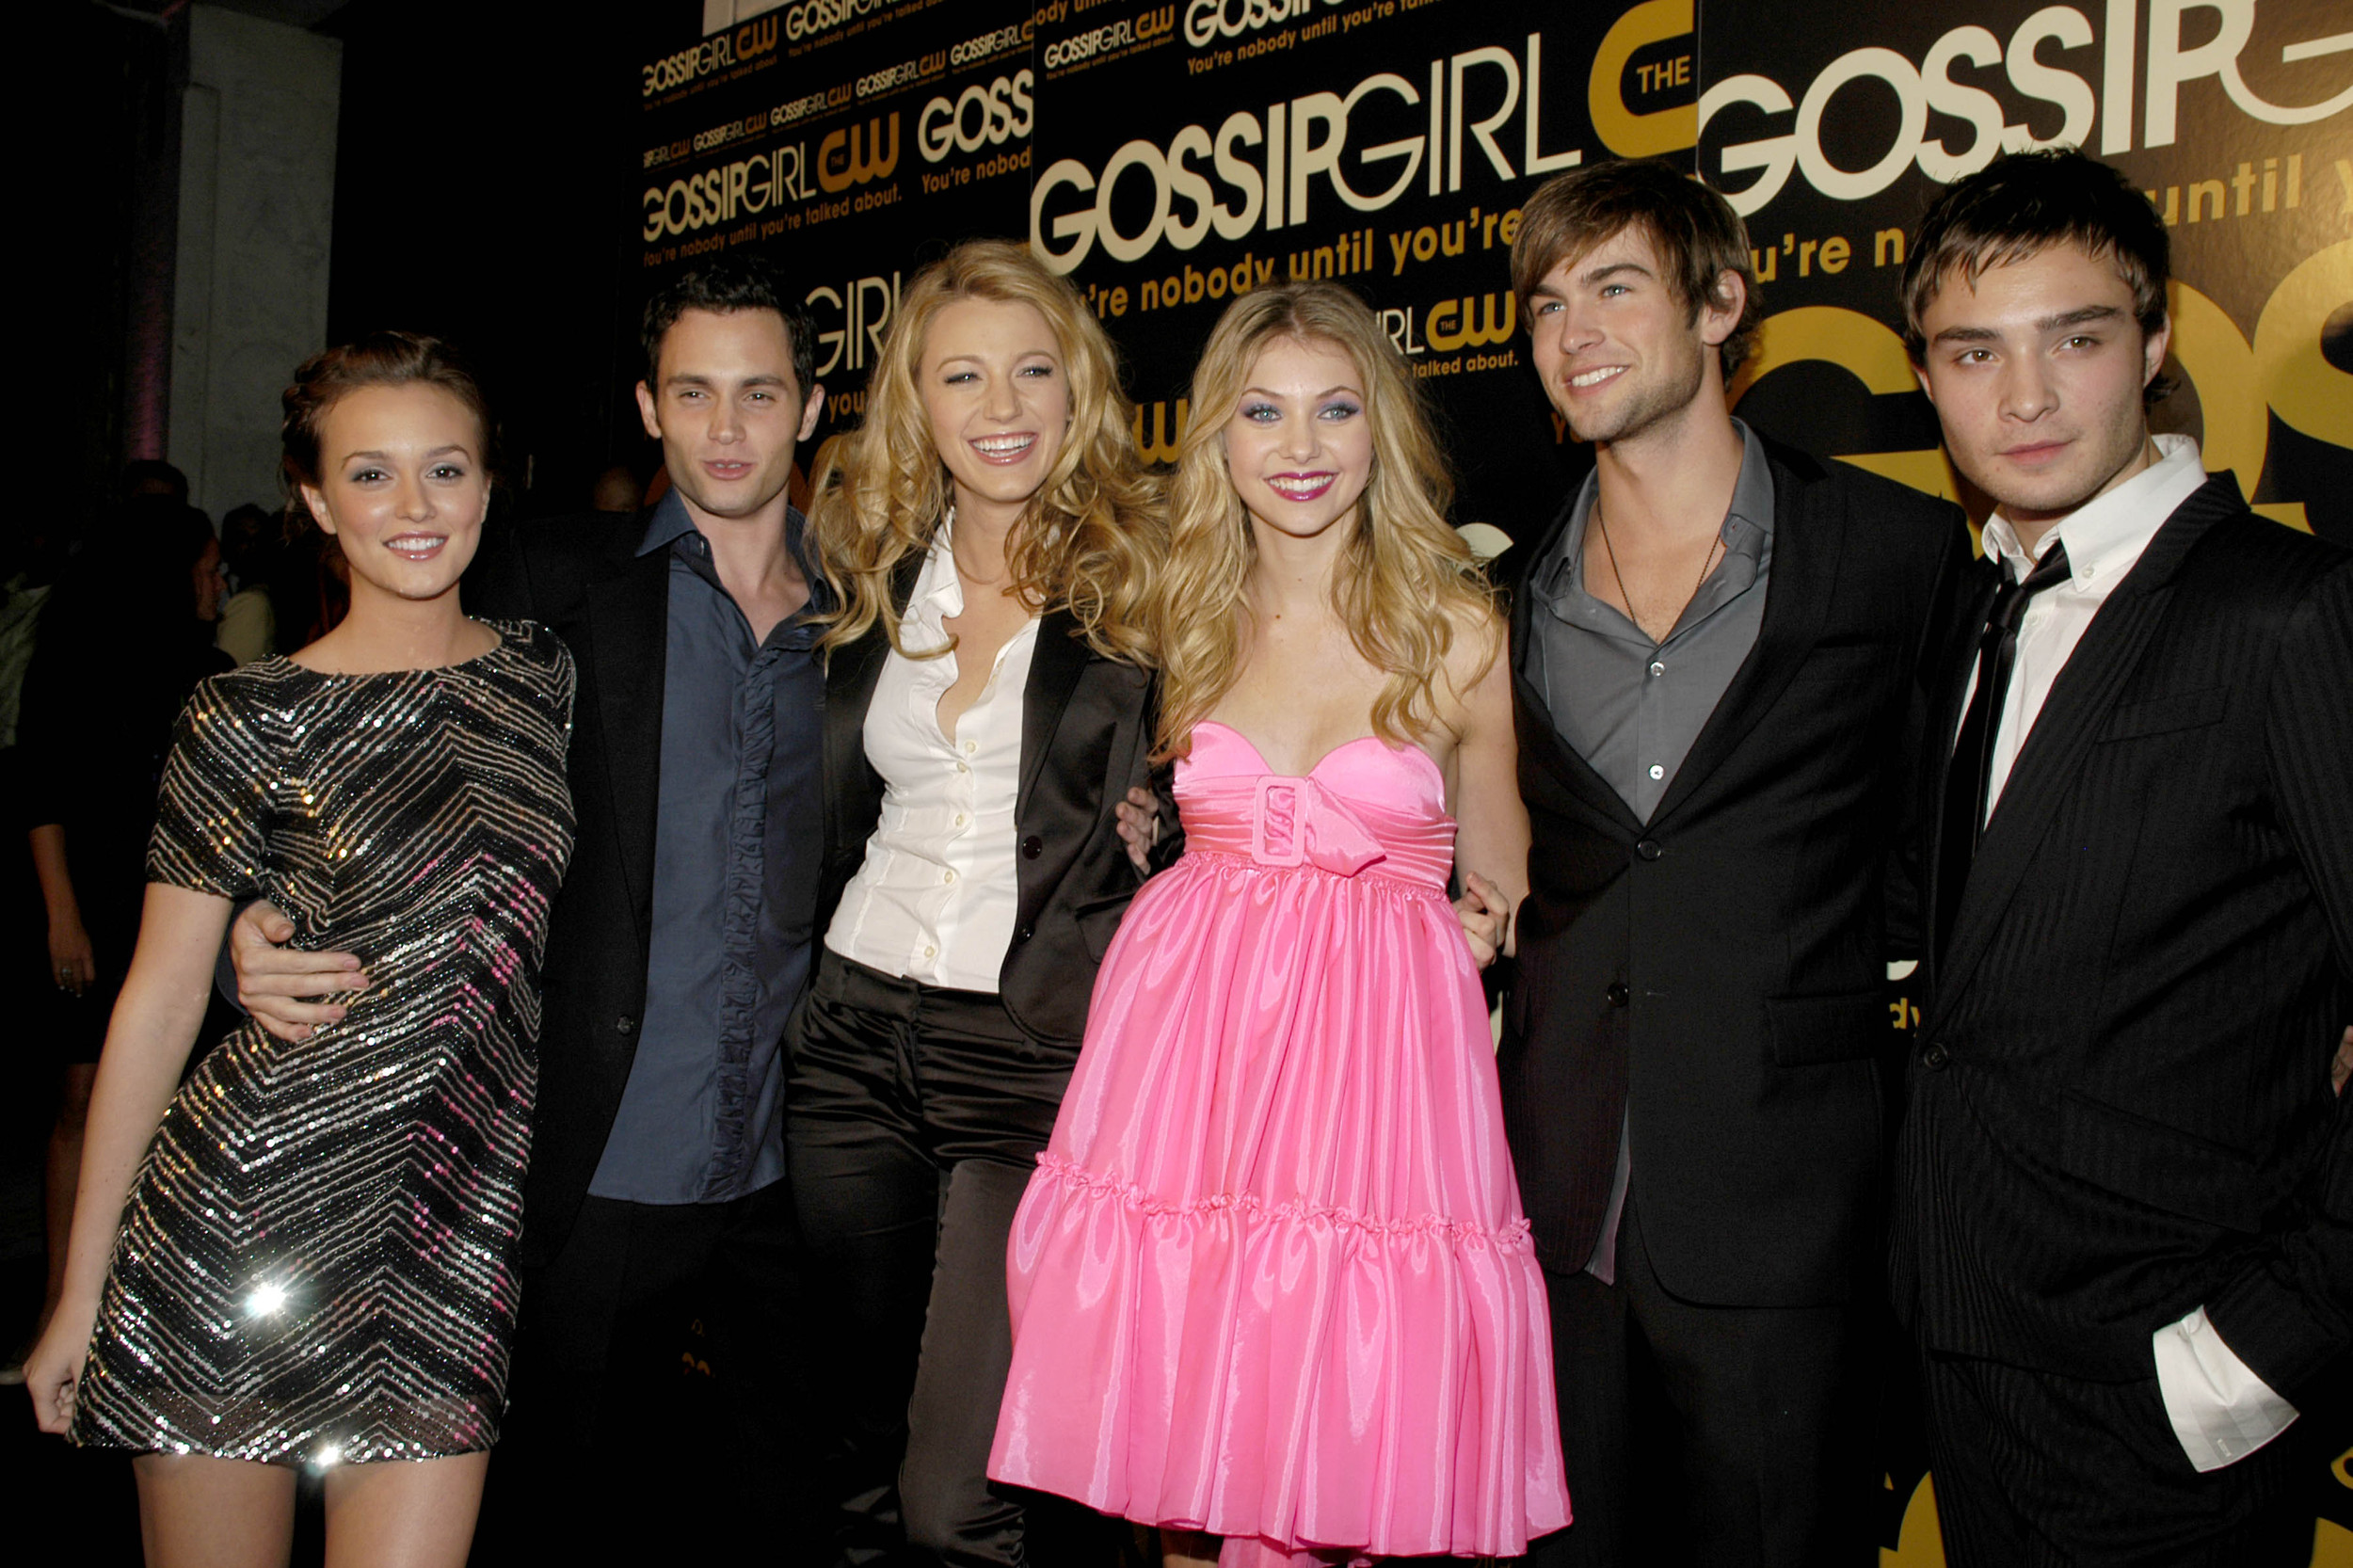 NEW YORK CITY, NY - SEPTEMBER 18: (L-R) Leighton Meester, Penn Badgley, Blake Lively, Taylor Momsen, Chace Crawford, Ed Westwick and ('Gossip Girl' Cast attend The CW Network premieres 'GOSSIP GIRL' at Tenjune on September 18, 2007 in New York City. ...